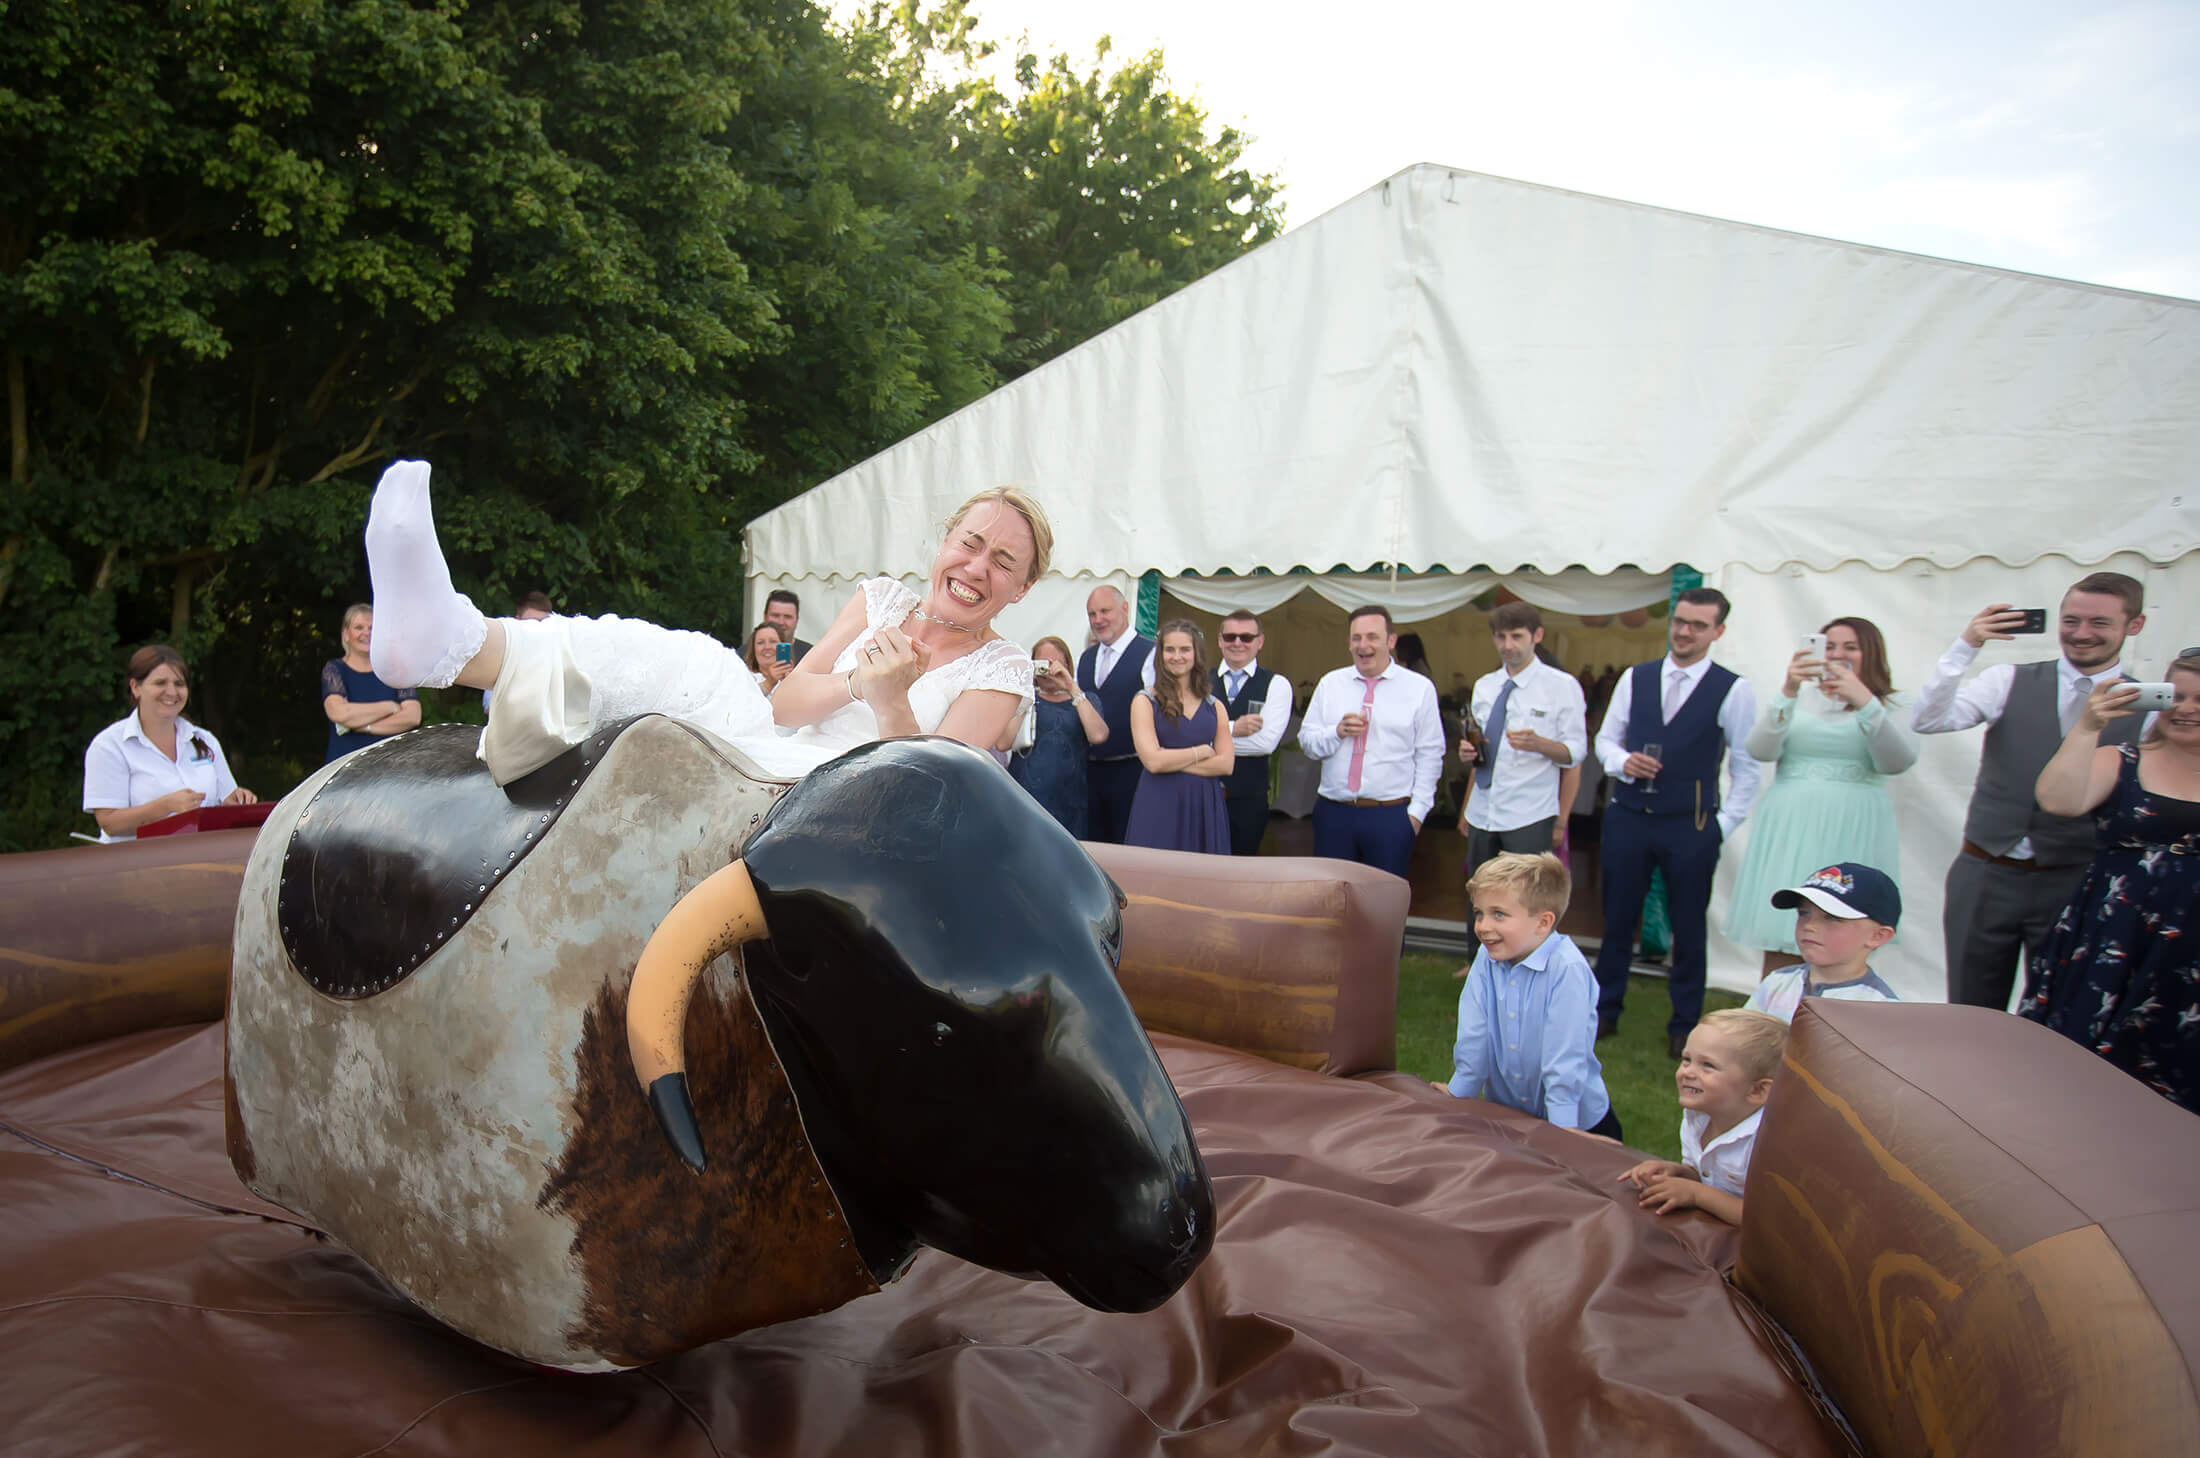 A bride falls from a rodeo bull at her wedding party